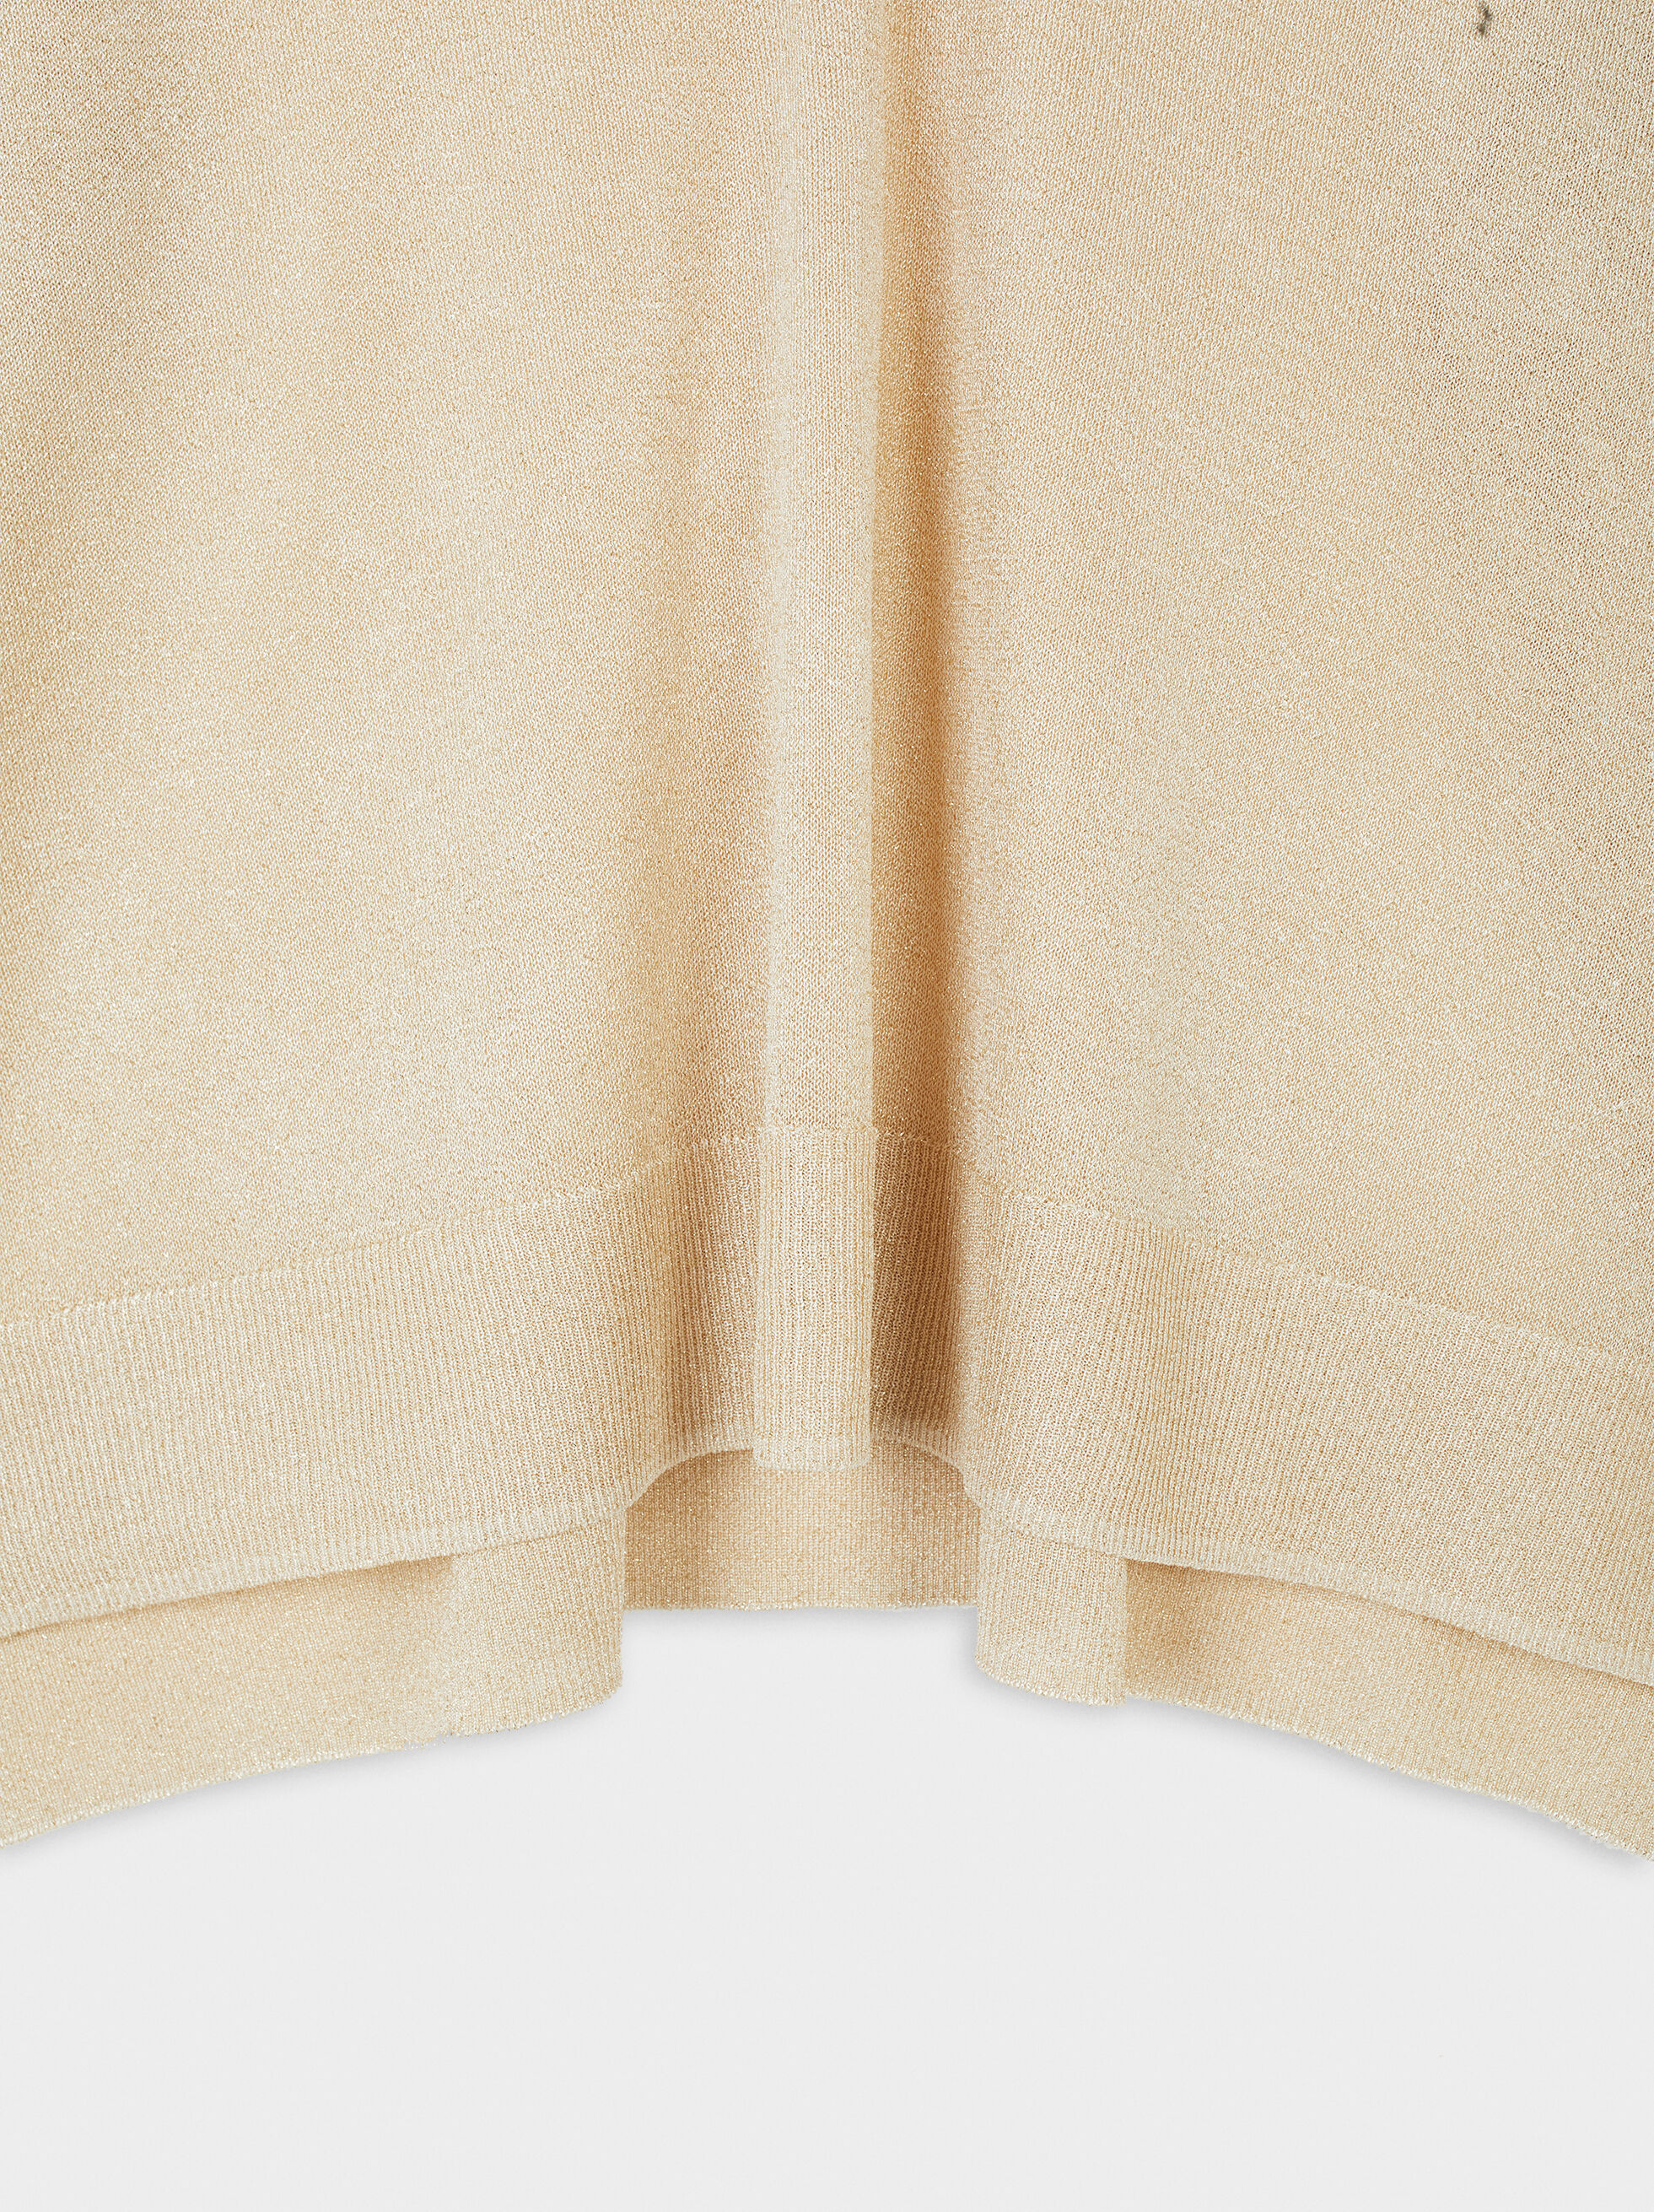 Oversize V-Neck Sweater, Beige, hi-res